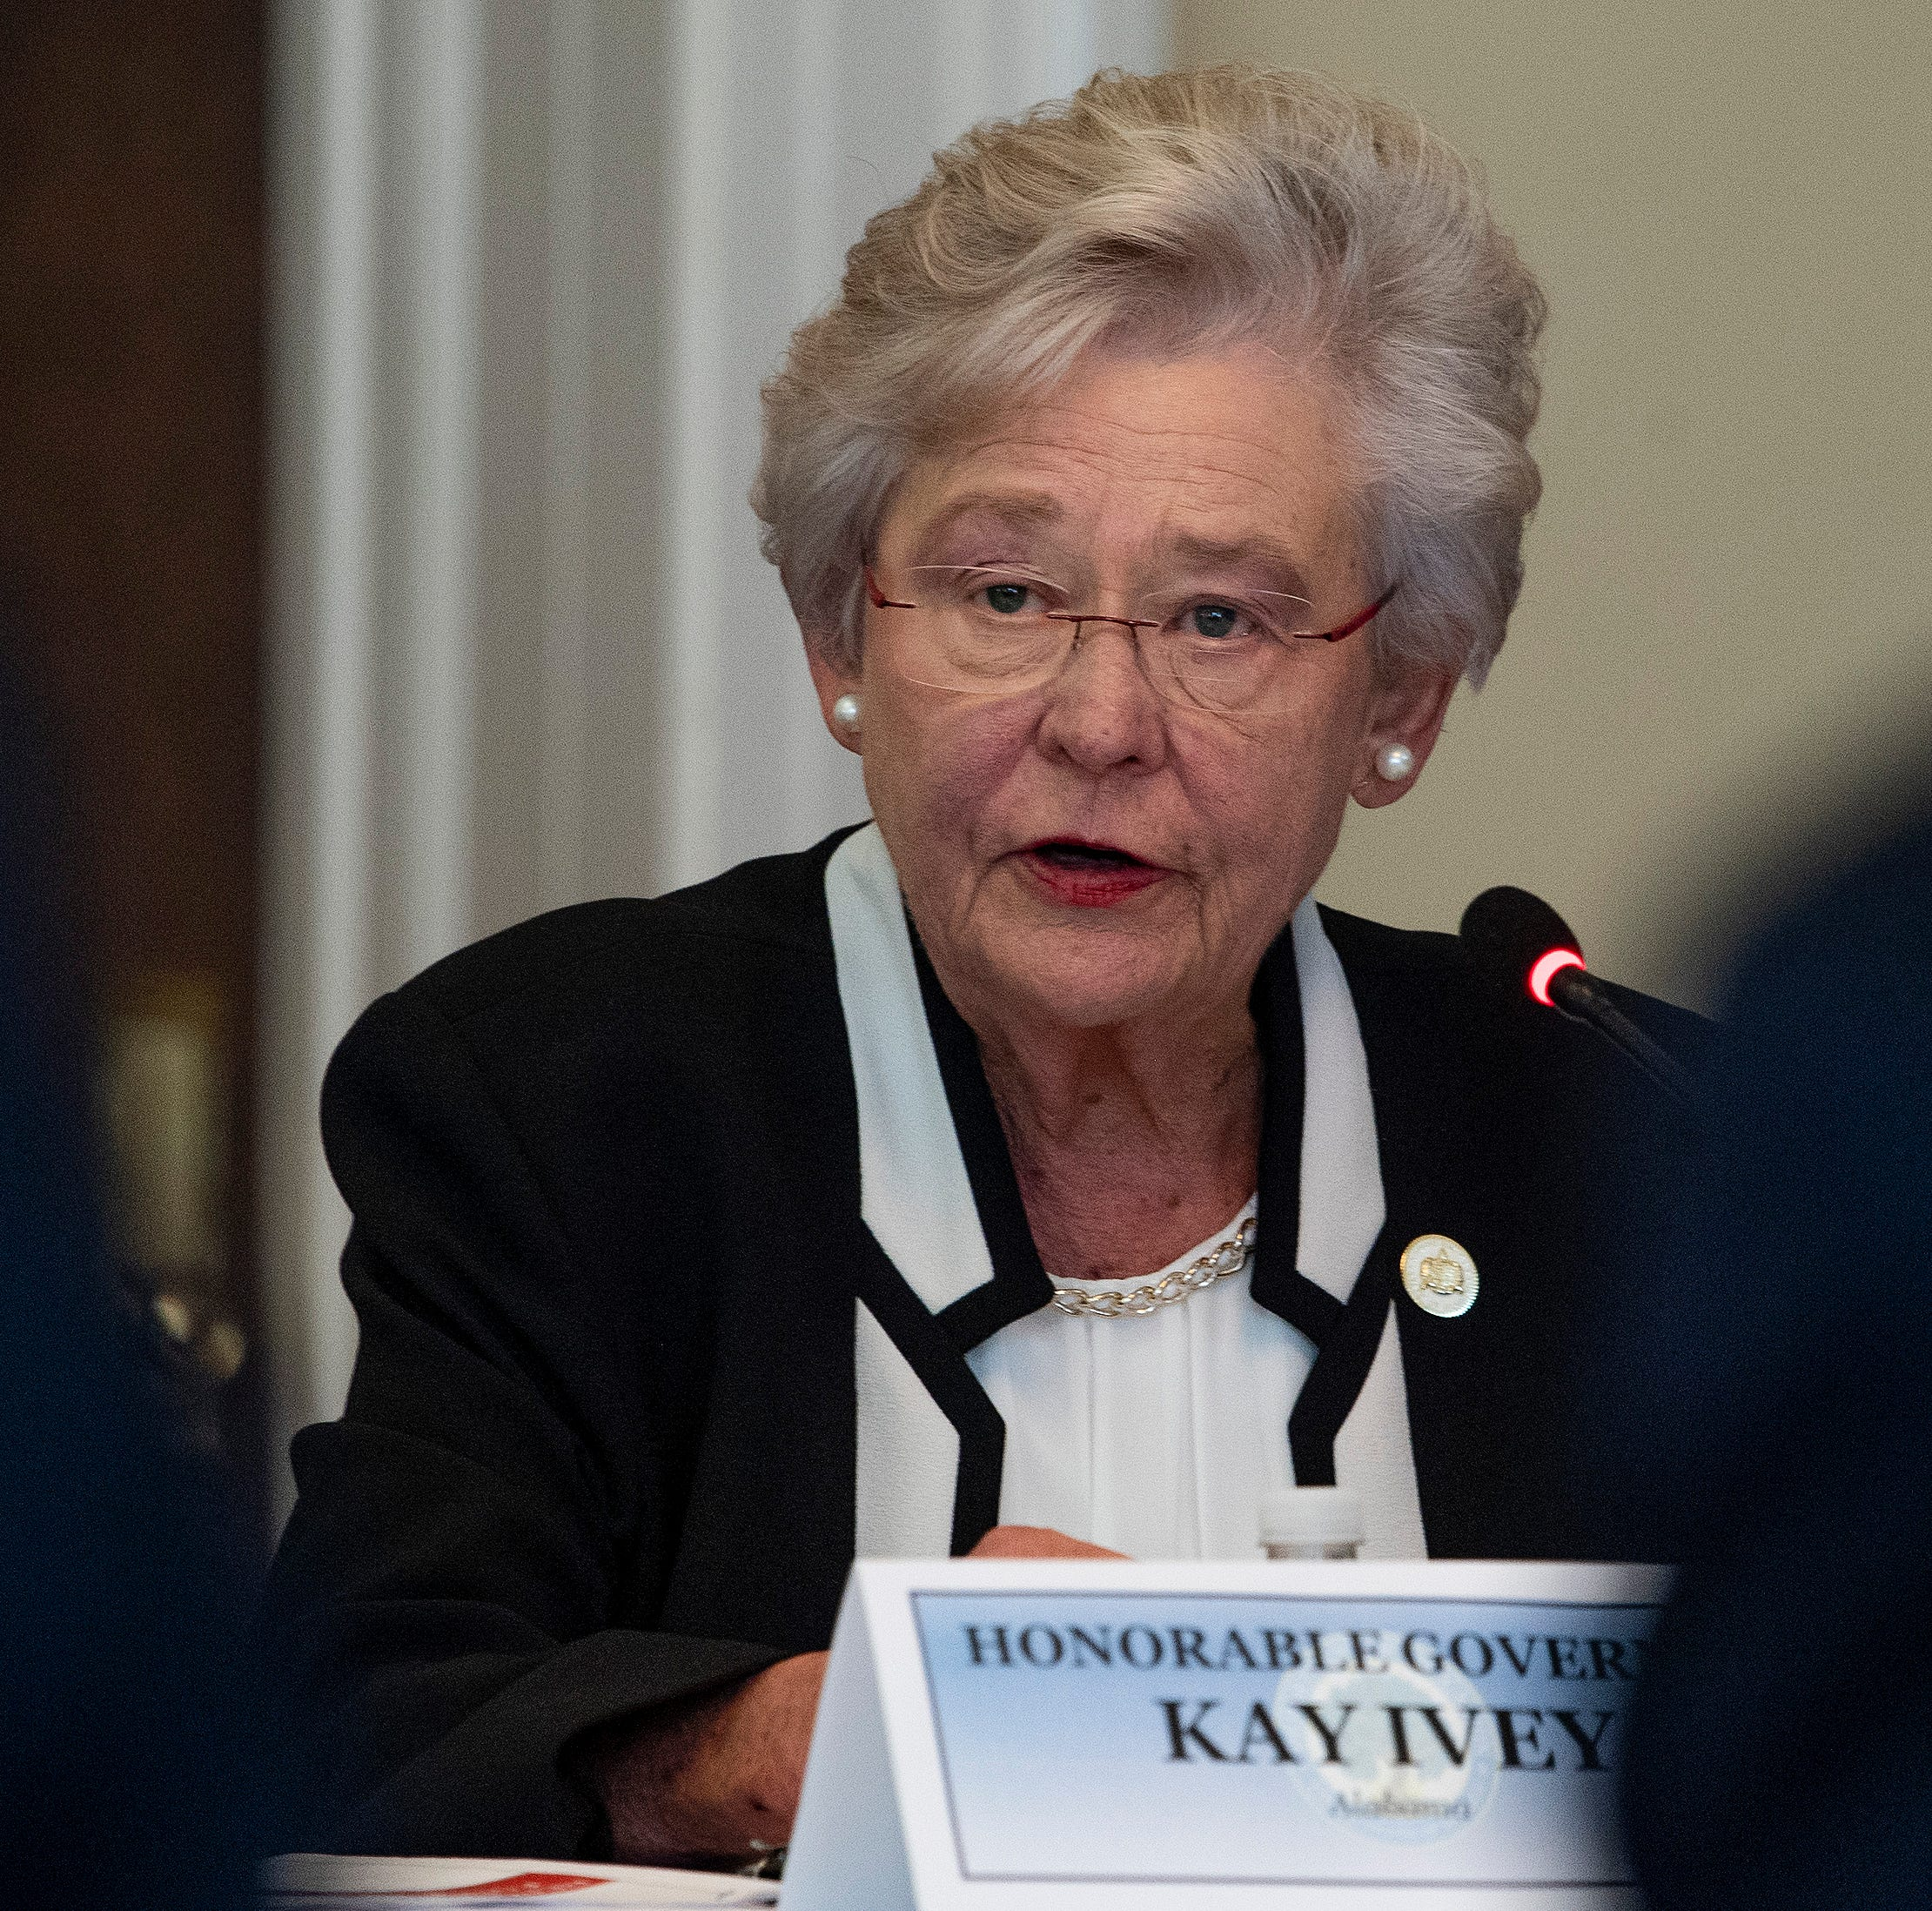 Alabama Governor Kay Ivey speaks as the Federal Commission on School Safety meets with local leaders during a roundtable in the state capitol building in Montgomery, Ala., on Tuesday August 28, 2018.